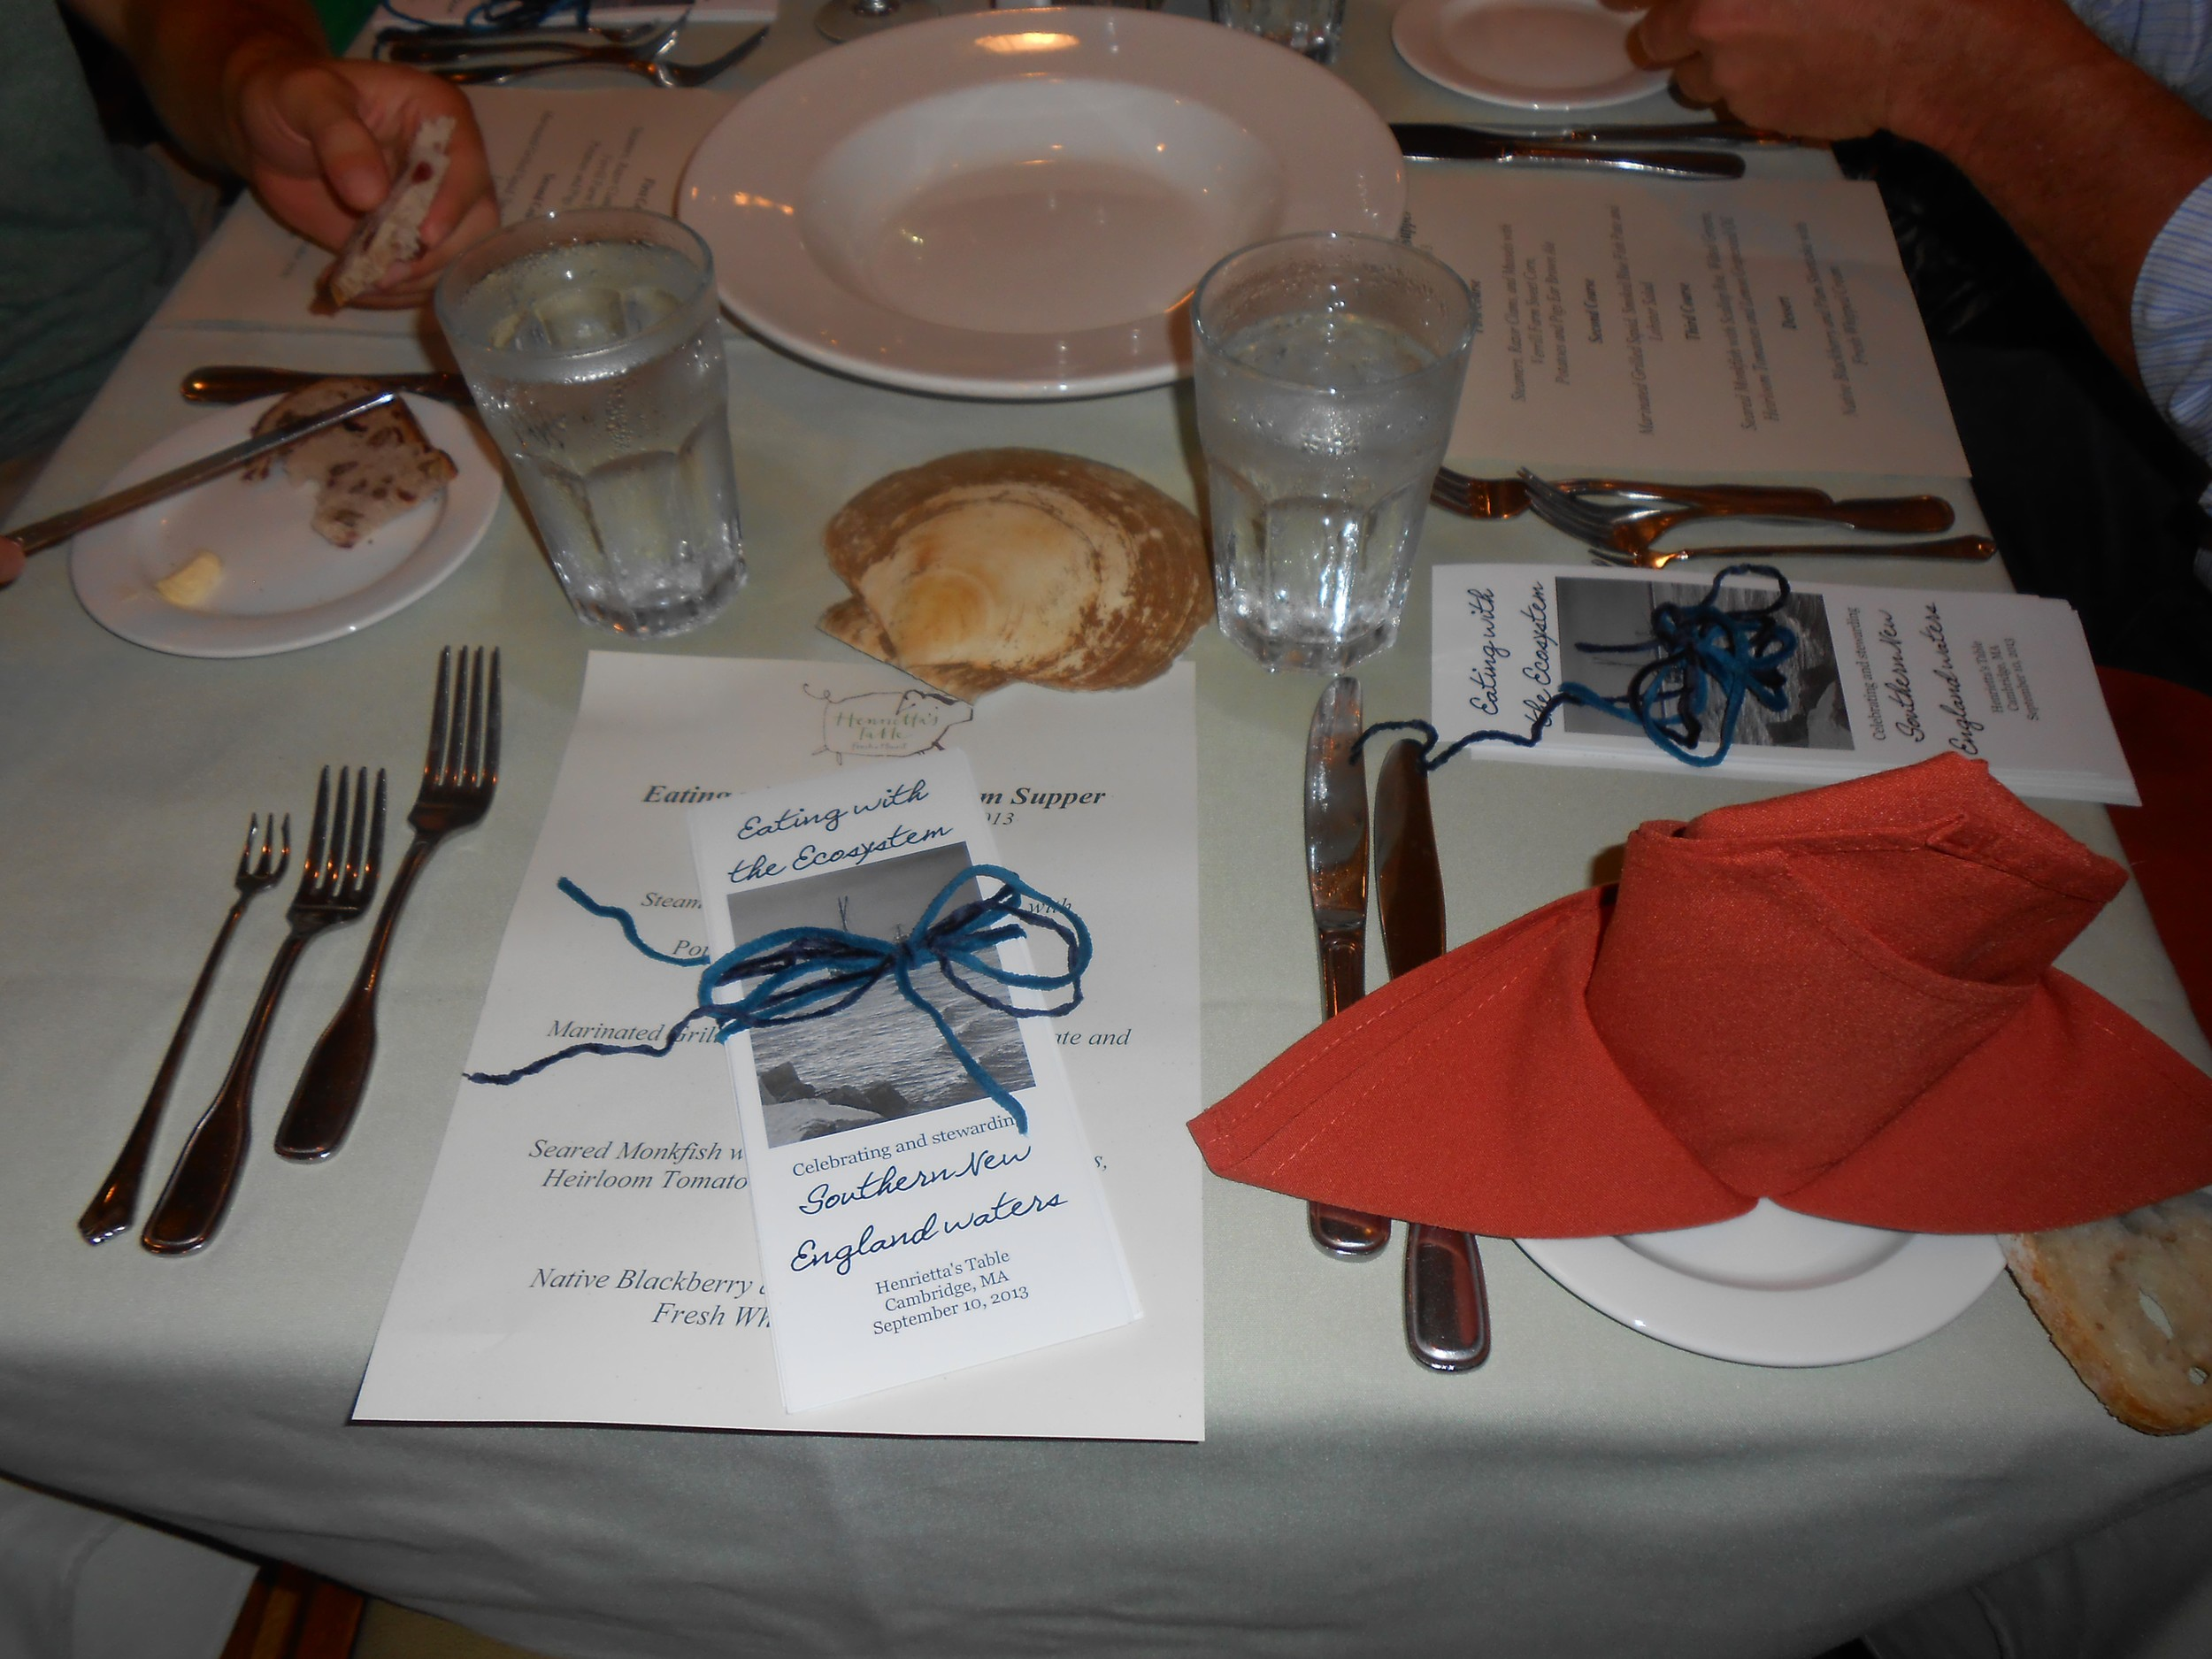 Place settings (note the little shellfish fork on the far left).